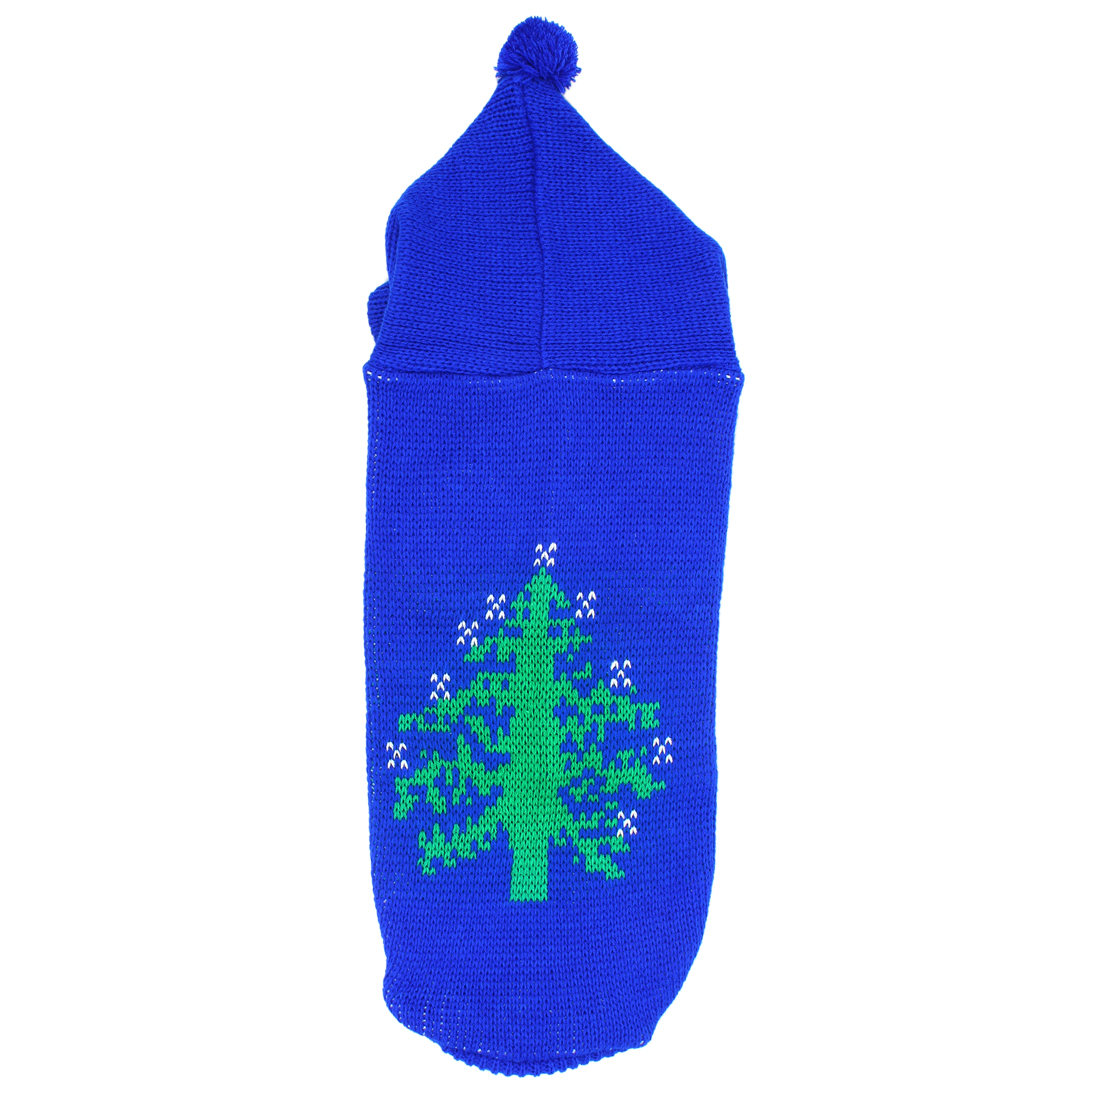 Pet Dog Poodle Ribbed Cuff Knitwear Hooded Apparel Sweater Royal Blue Size L